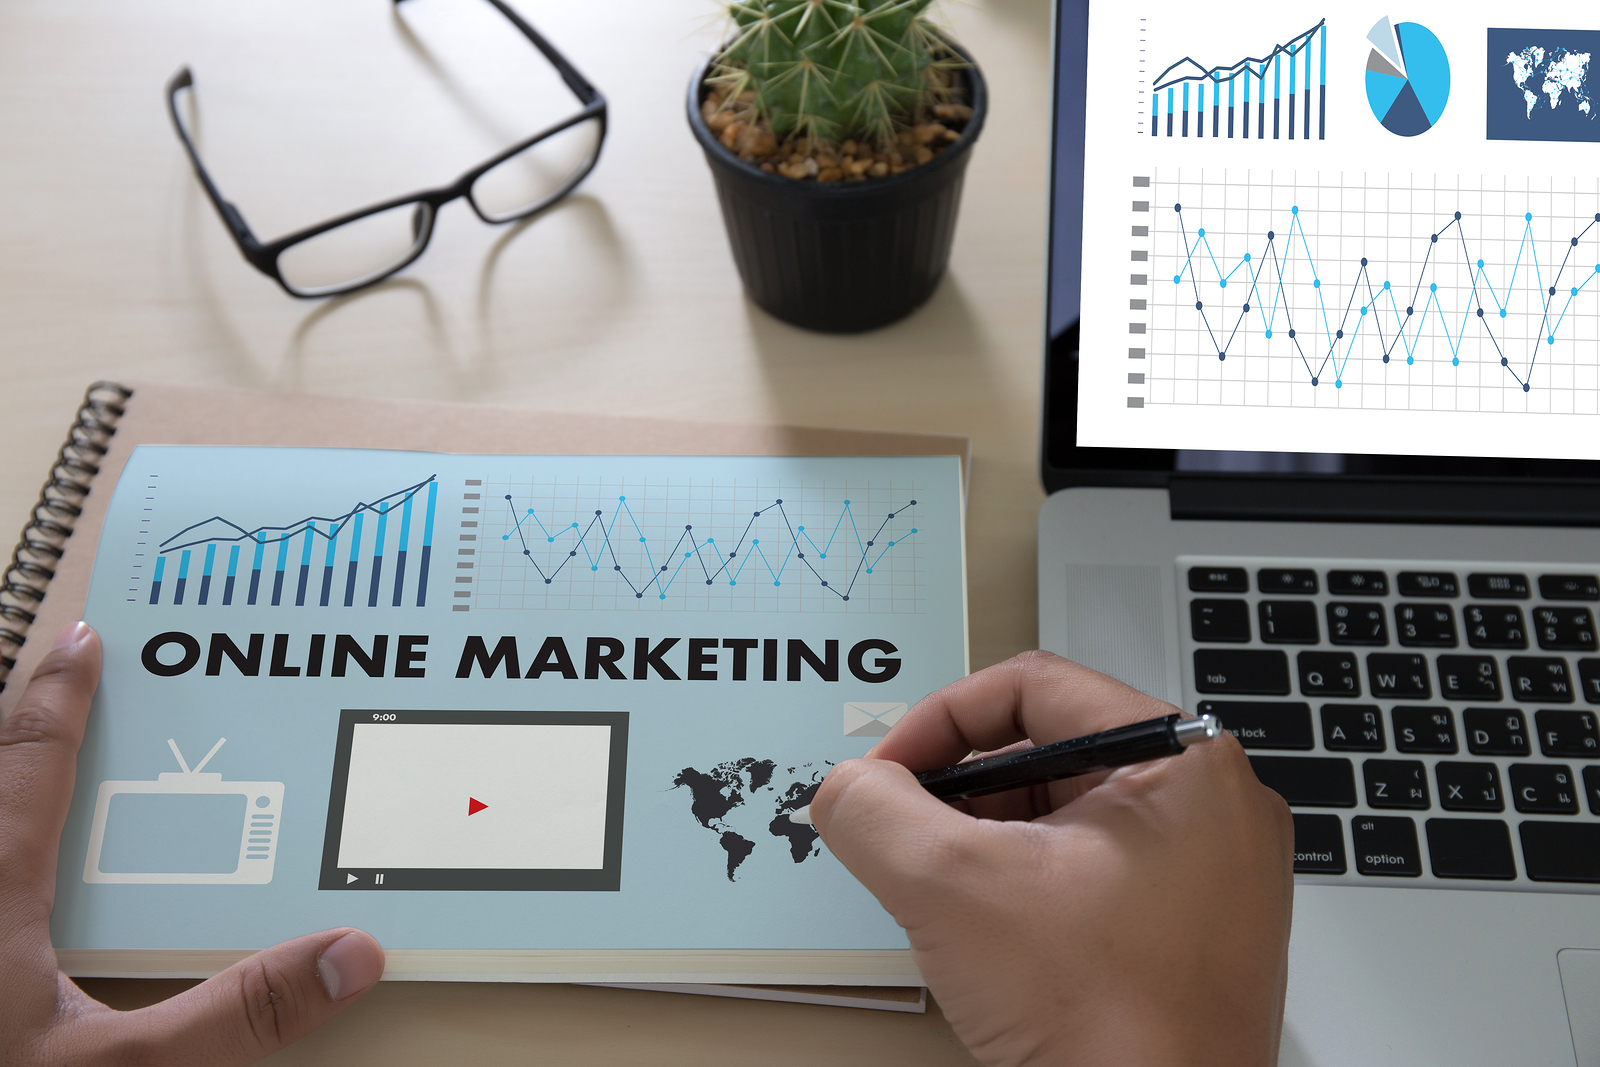 SEO Company Melbourne Experts Helps you in Successful Online Marketing Campaign